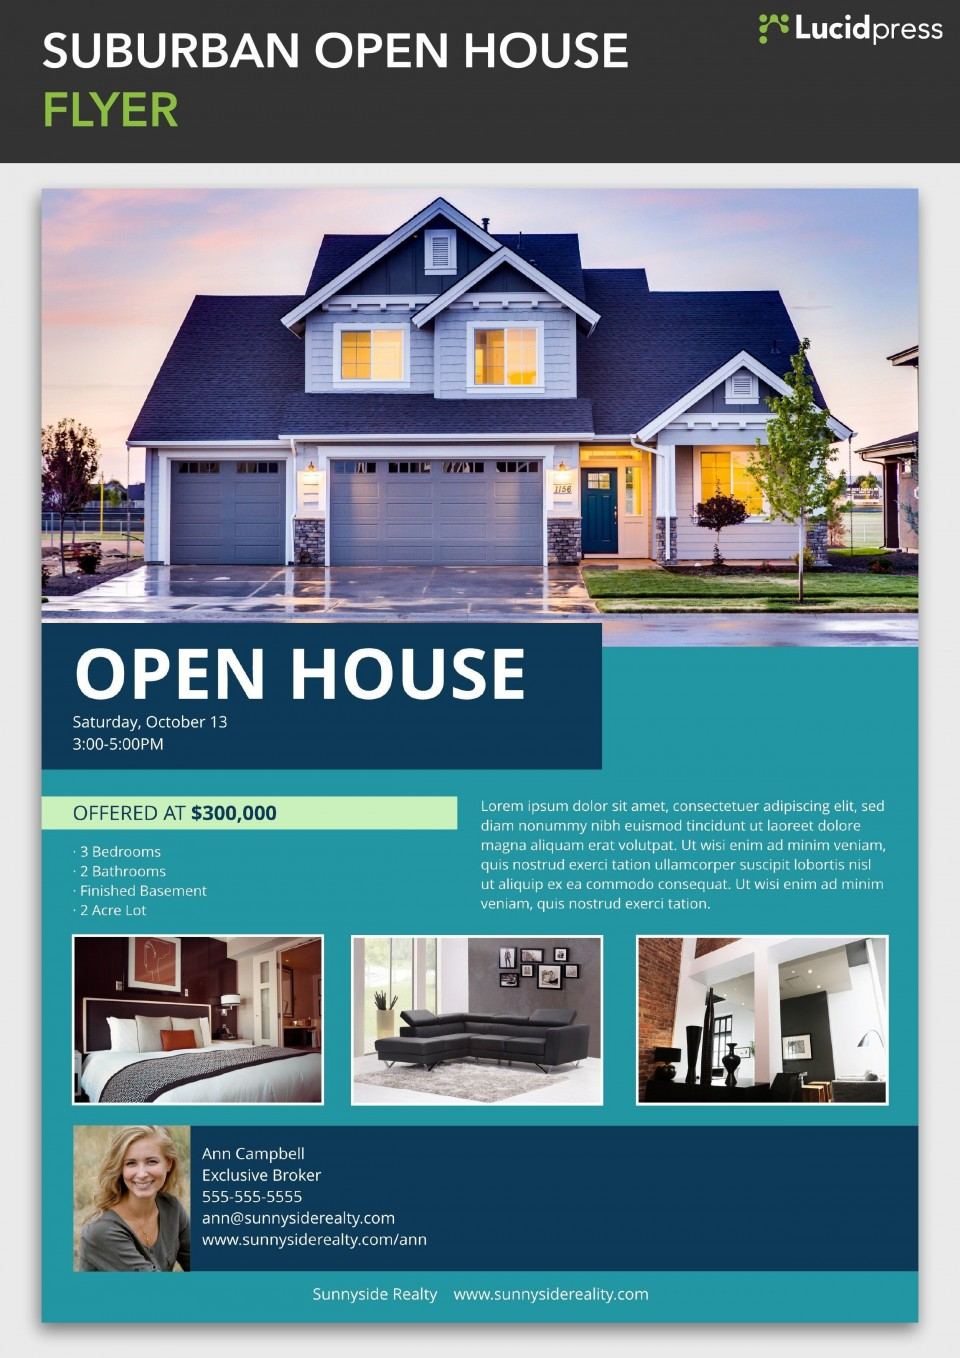 002 Magnificent Open House Flyer Template High Def  Word Free School Microsoft960